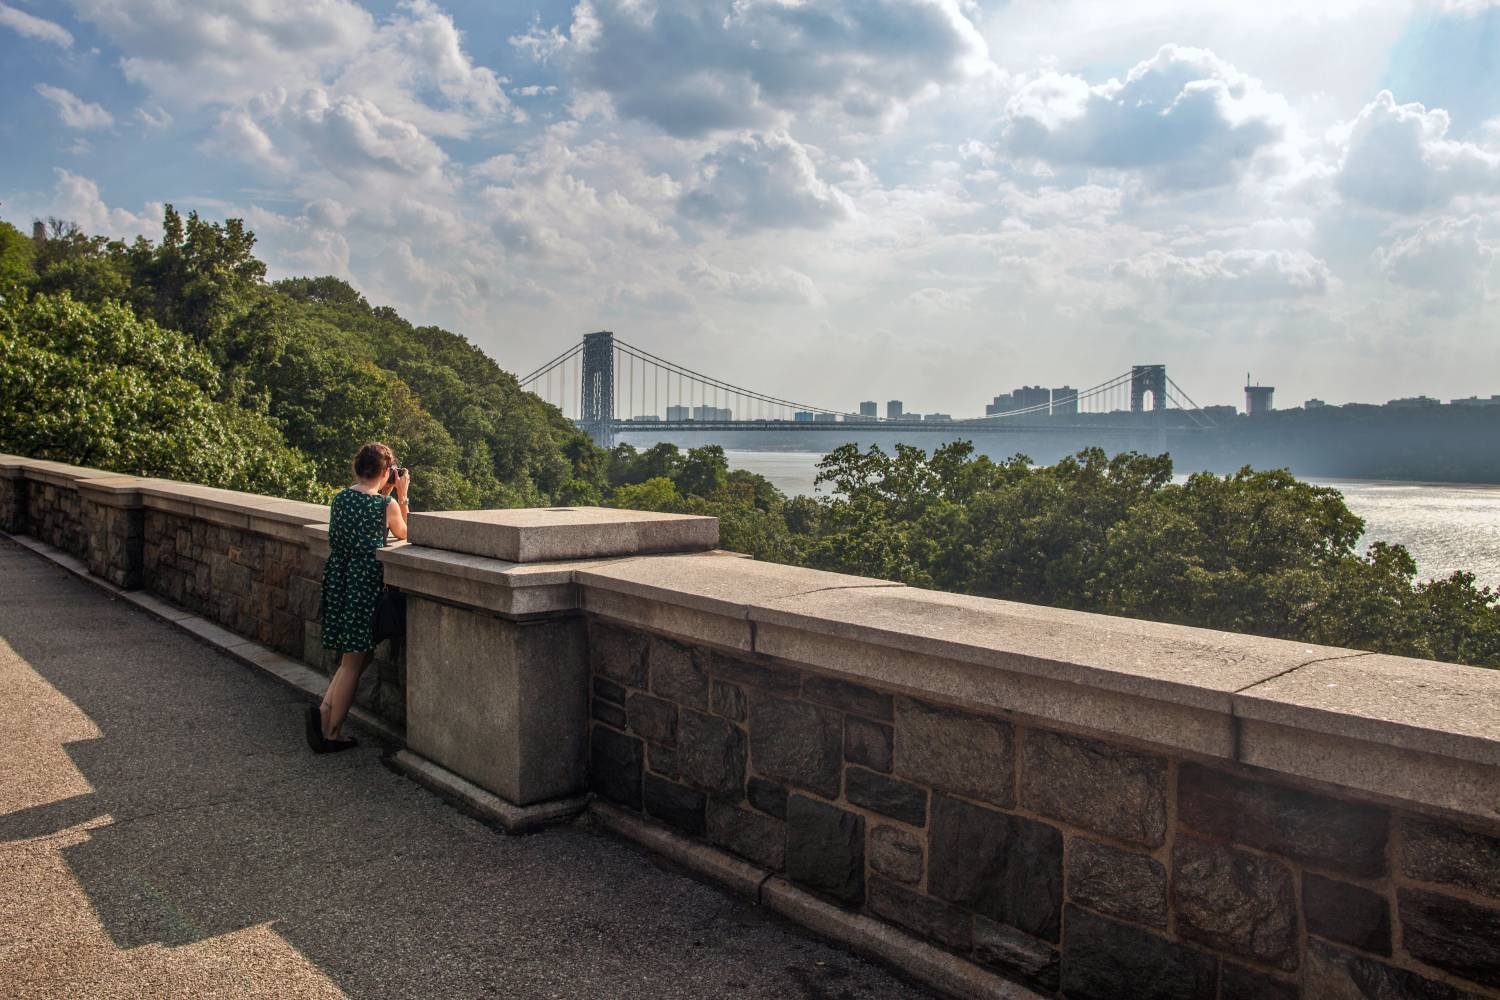 fort-tryon-park-joe-buglewicz-110__x_large.jpg